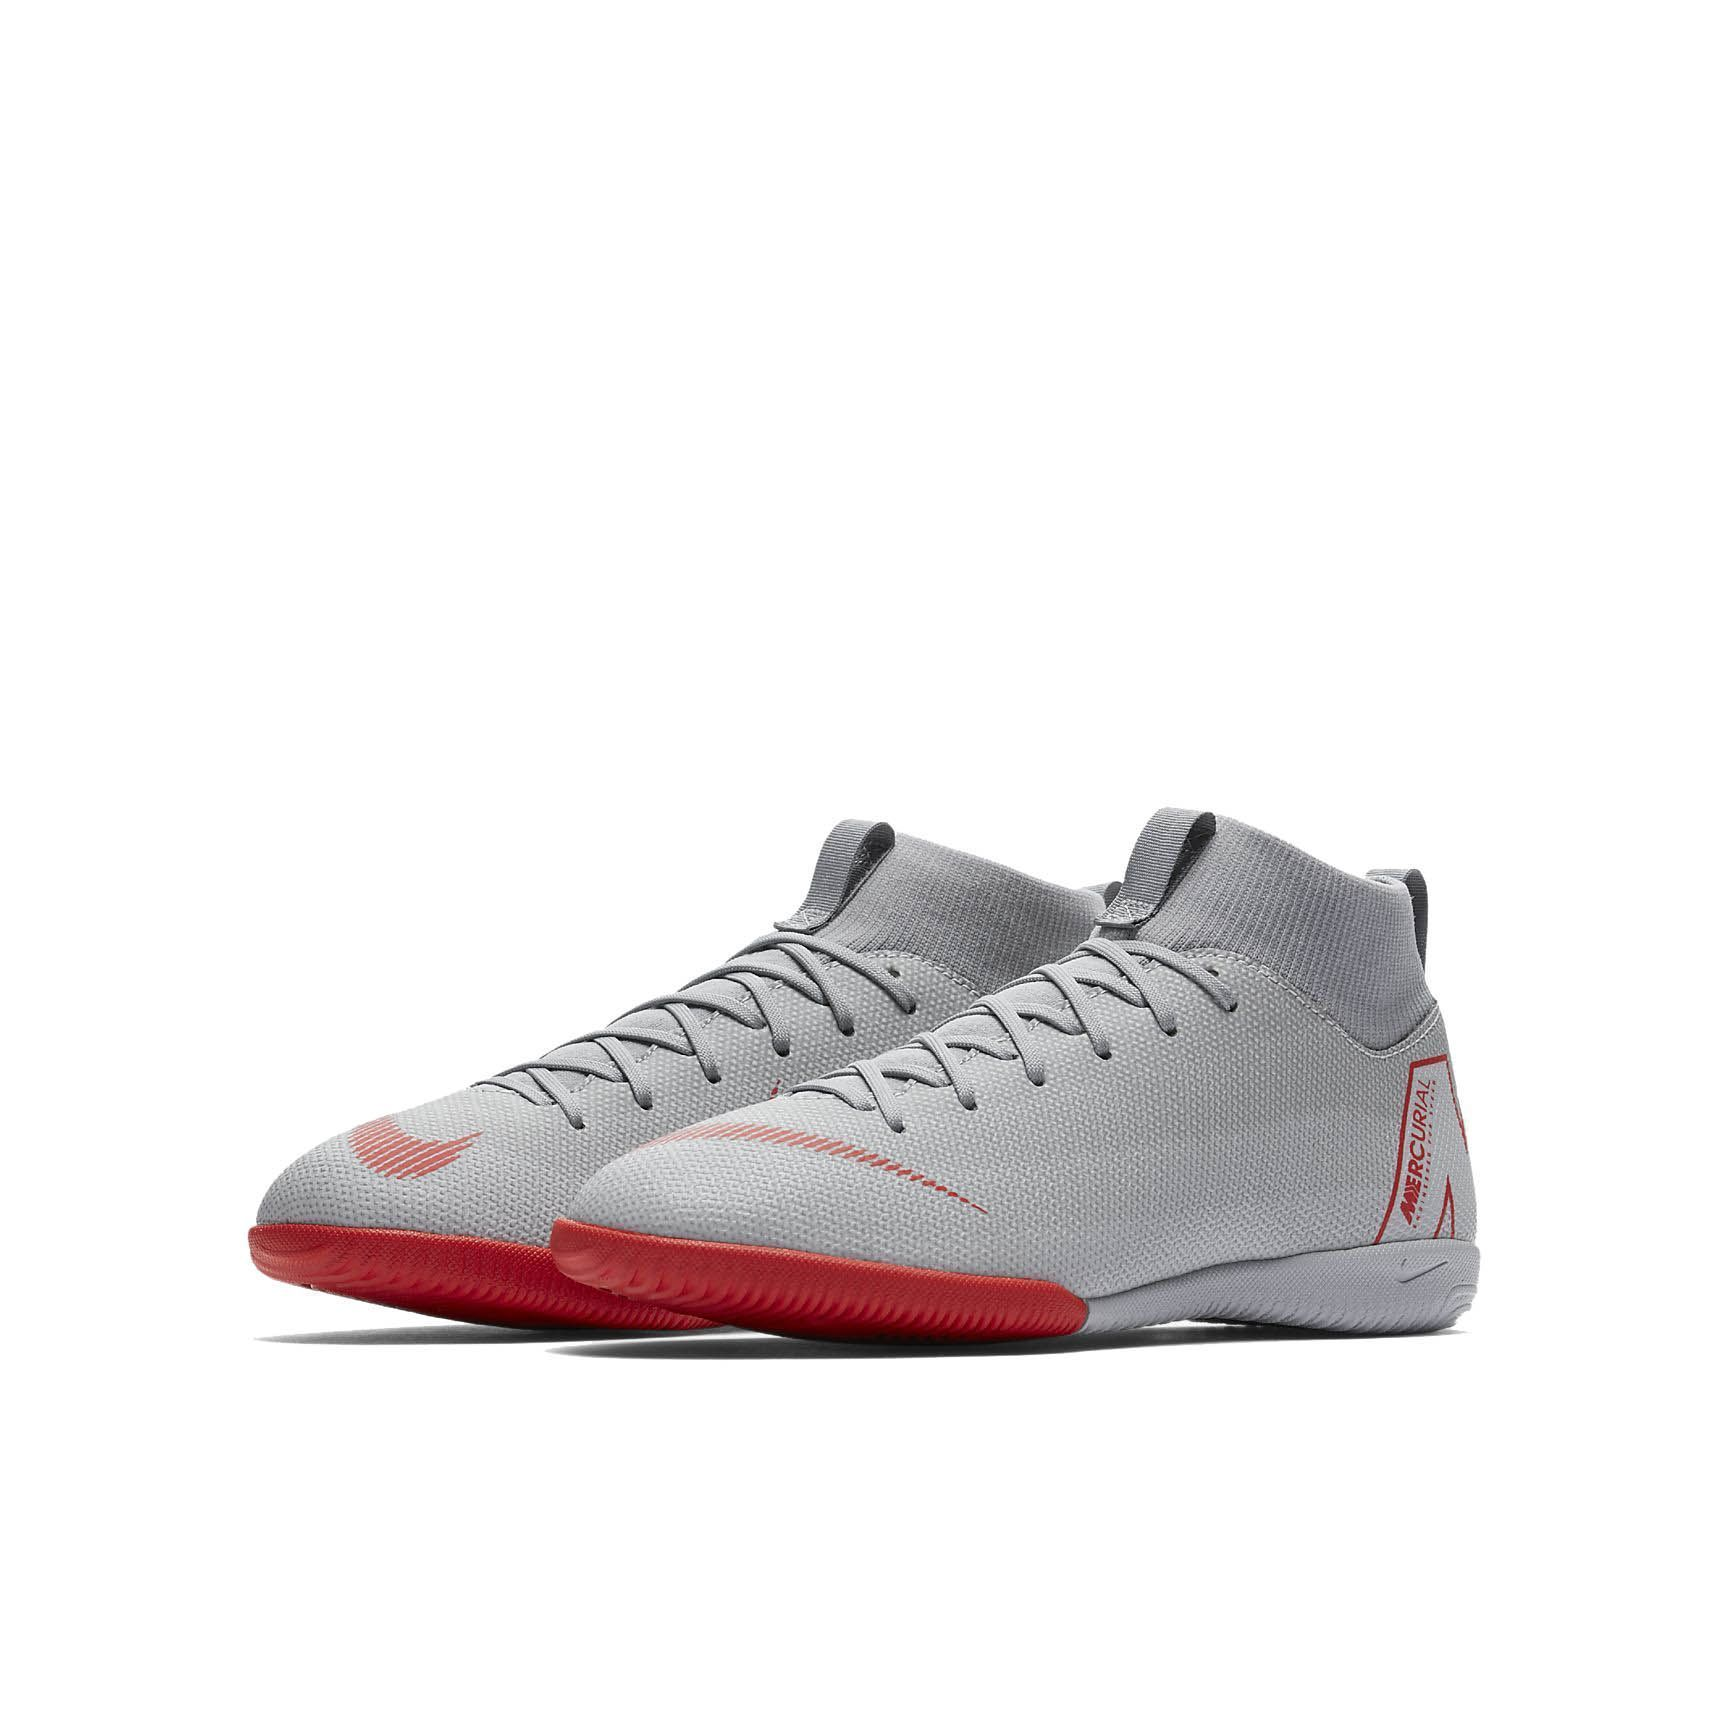 NIKE SUPERFLYX VI ACADEMY GS IC AH7343-060 JR